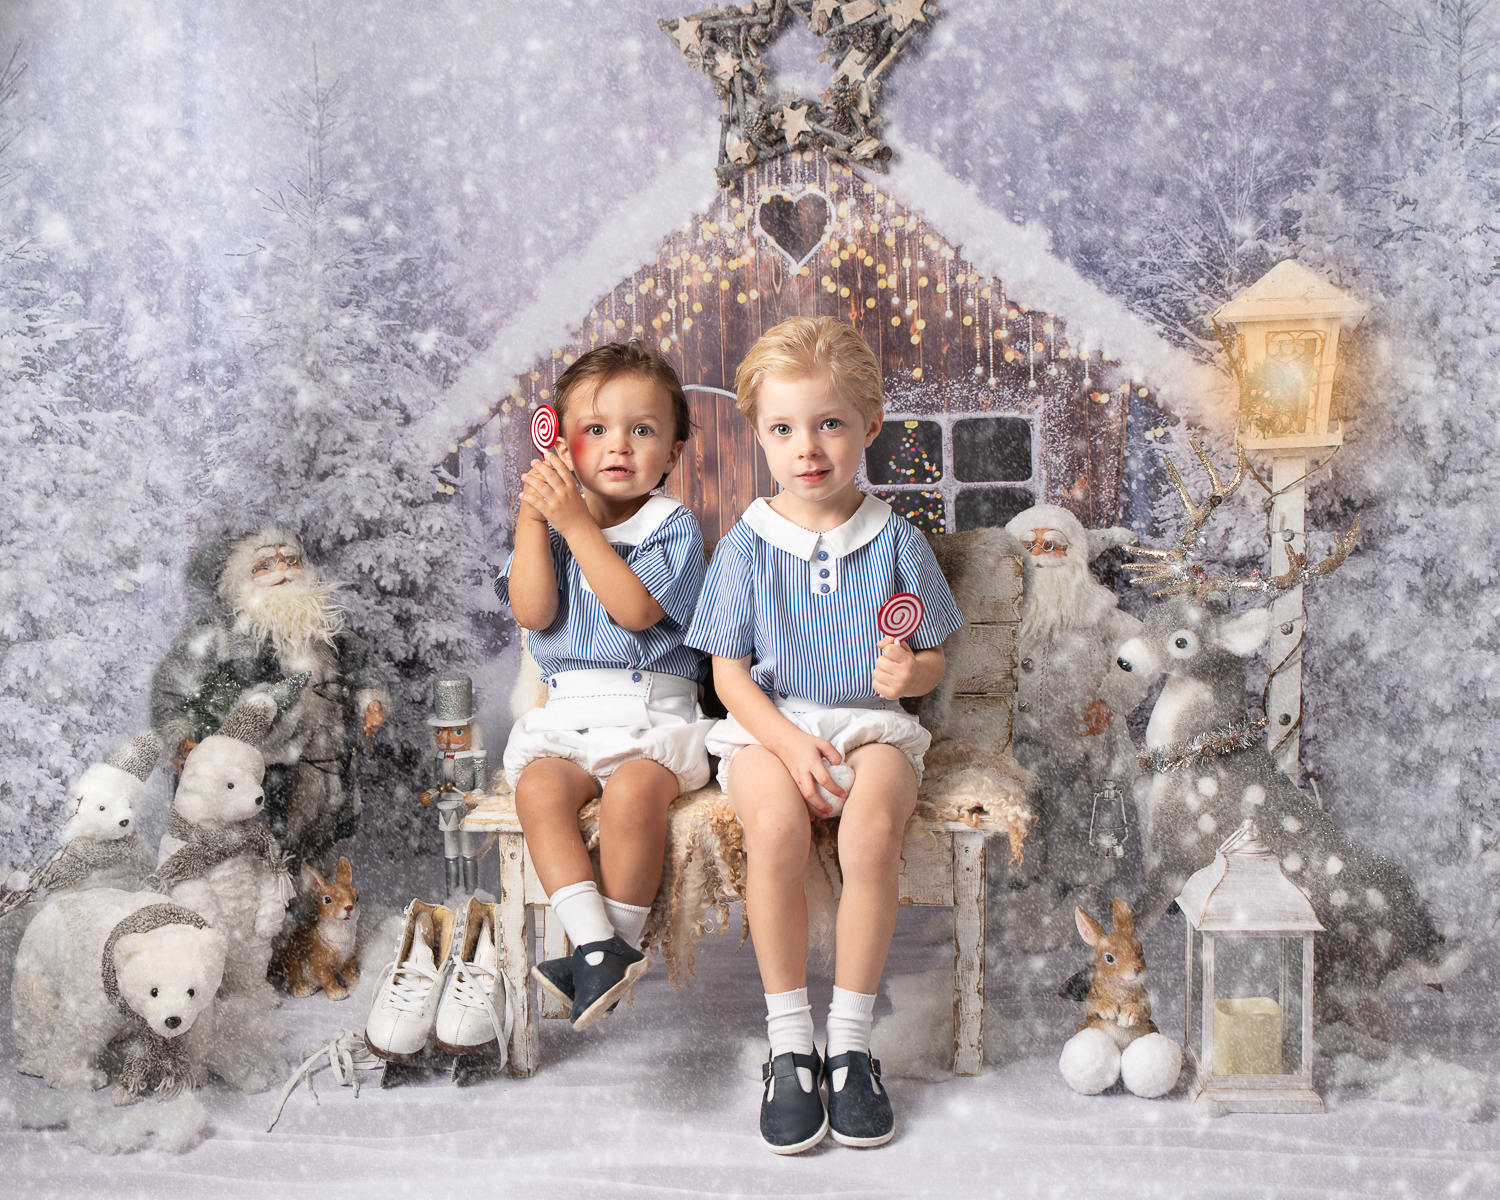 two brothers in winter wonderland in matching blue and white Spanish outfits